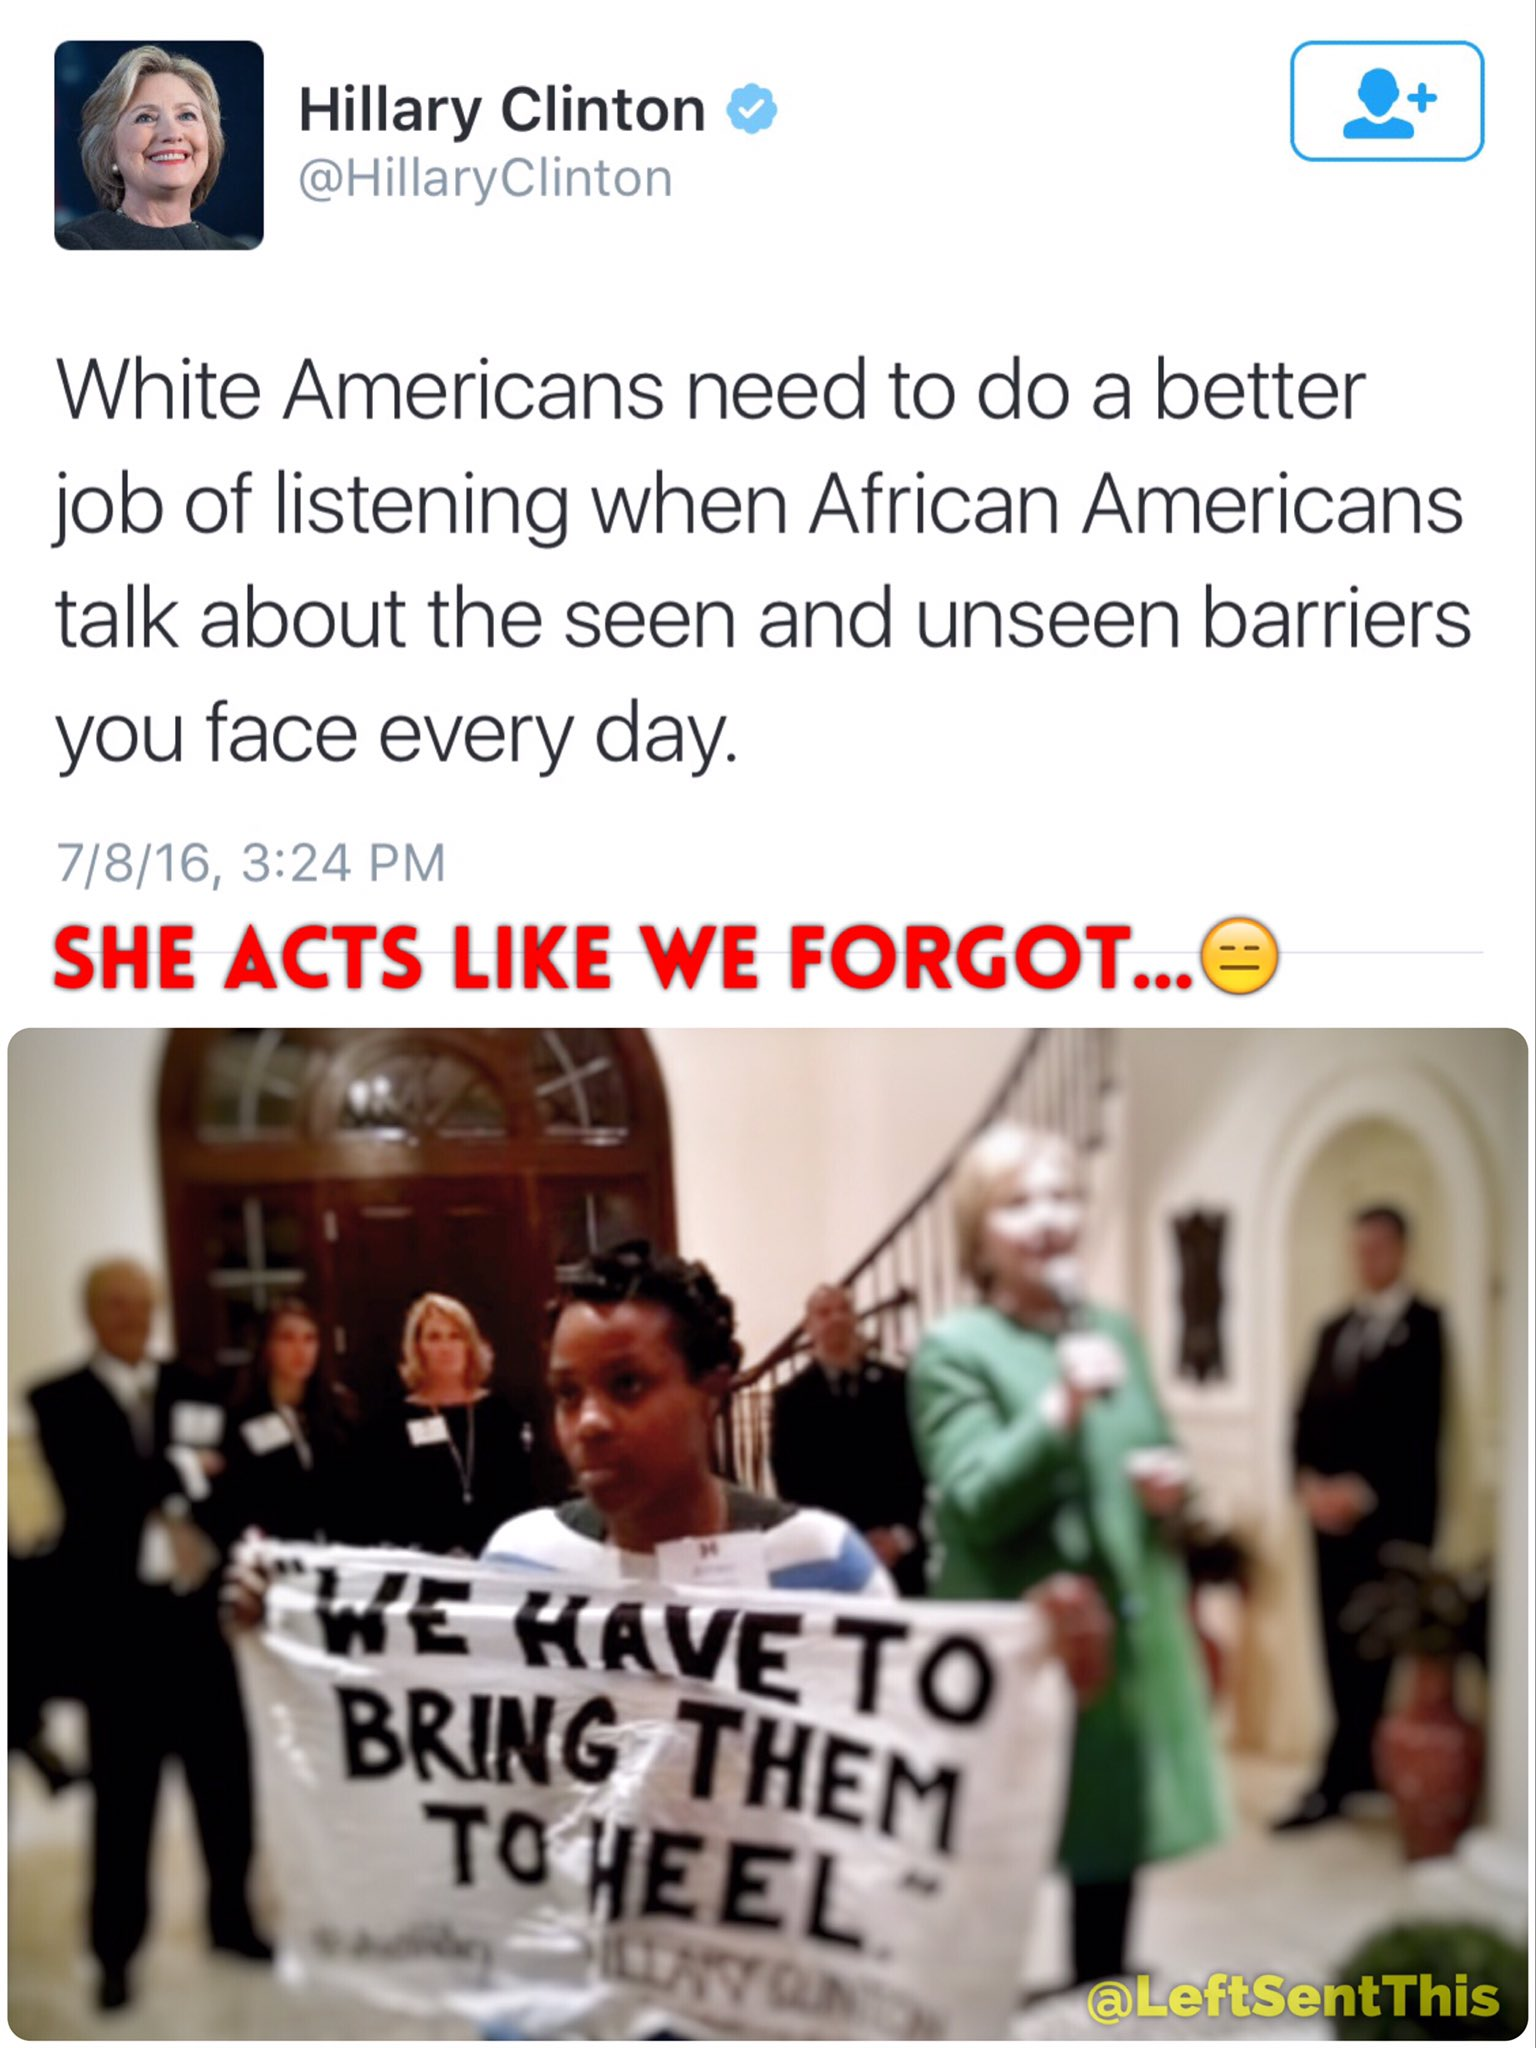 Hillary Clinton acts like this tweet erases her silencing this Black women, and calling Black men 'super predators.' https://t.co/gHs0UY56zy